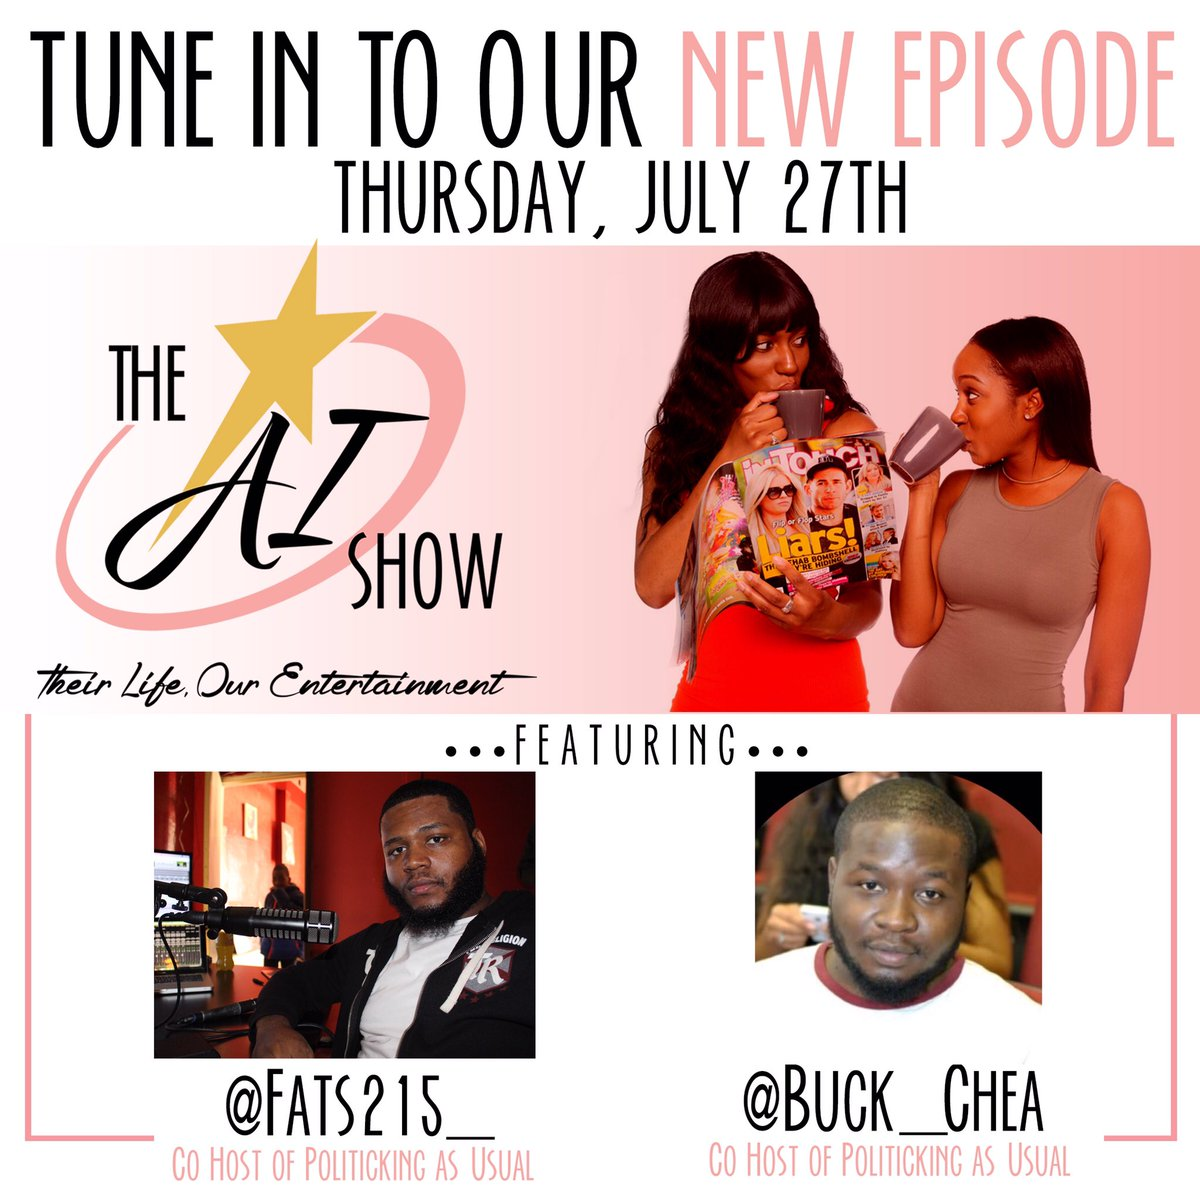 #PAU takes on @TheAIShow1 this Thursday stay tuned!<br>http://pic.twitter.com/J2jhpWUslz